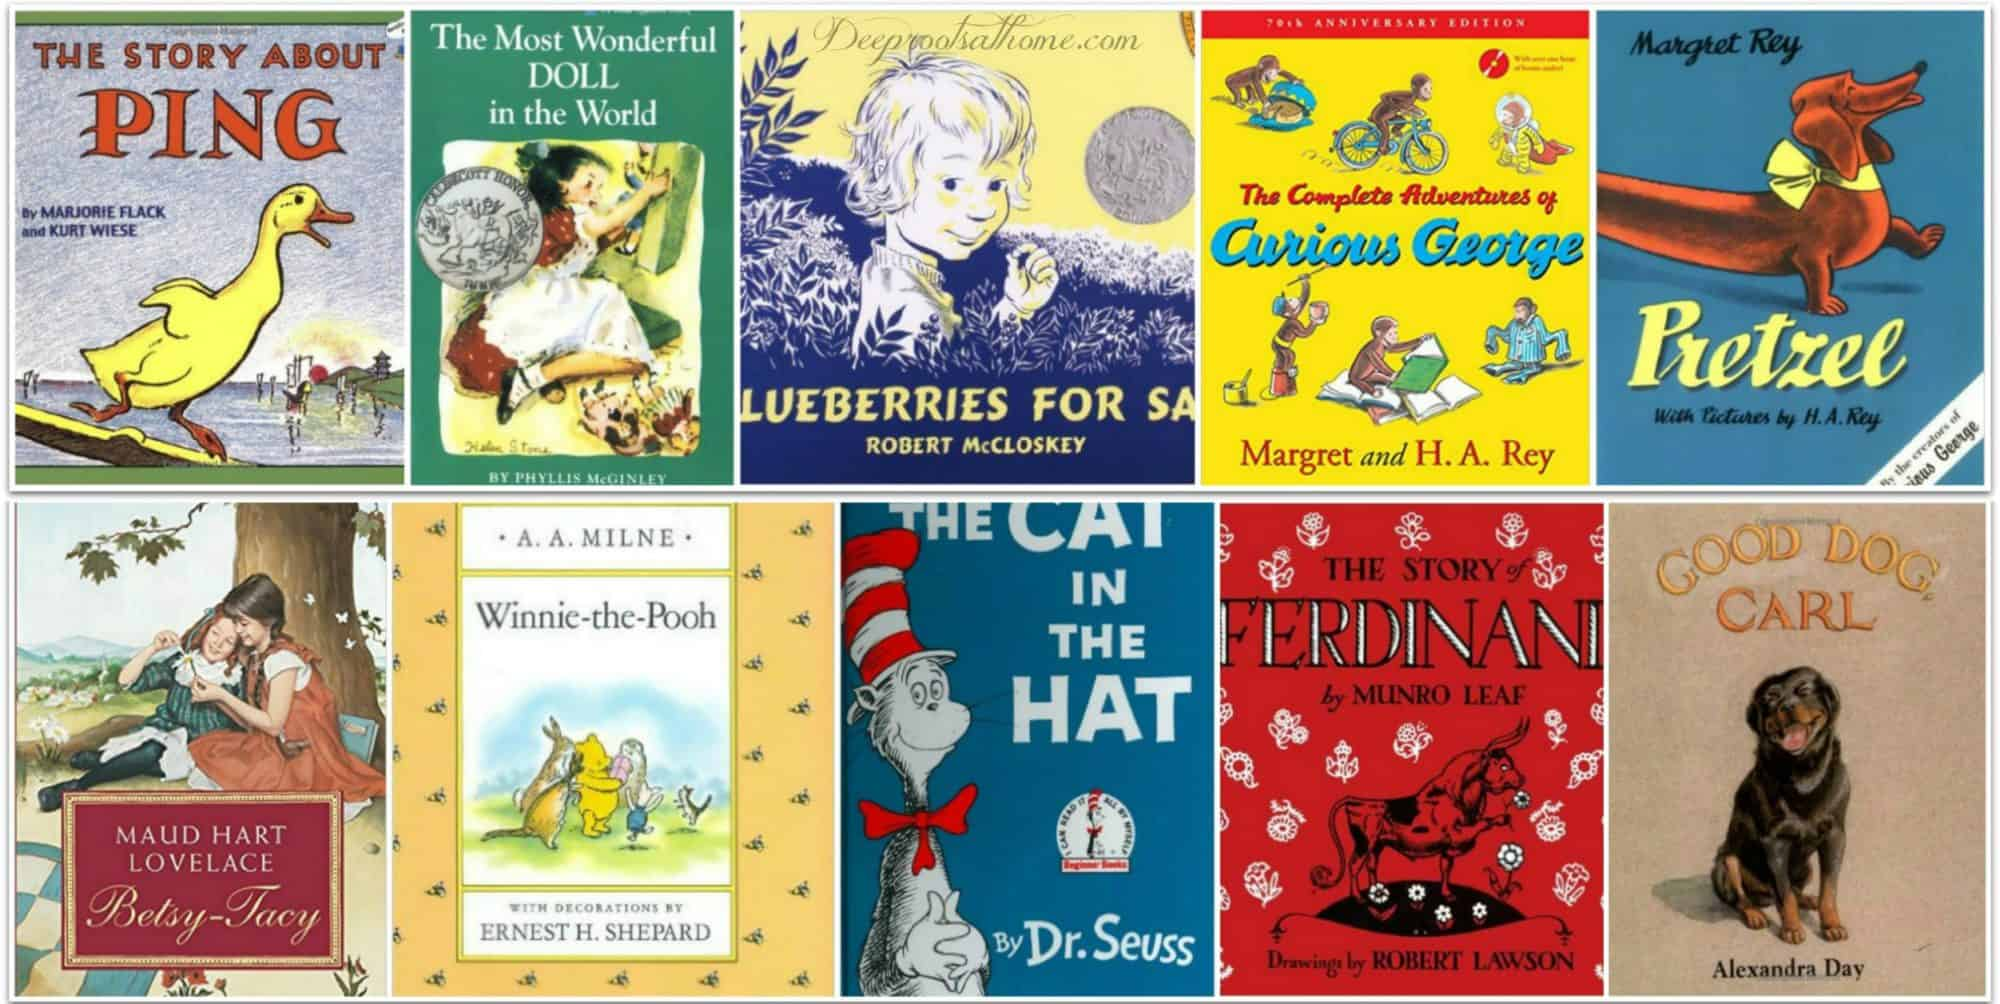 Early Reading Library: 75 Of The Best Little Children's Books Of All Time, reading aloud,thinking patterns, academic ability, communication skills, glue, bonding with parent, spending time, quality time, walk side by side, adventure, snuggling up, reading on the couch, teaching how to read, literacy, love to read, books, children's books, classic literature, children's lit, education, nurture, young kids, authors, favorite books,The Story about Ping,Marjorie Flack,The Most Wonderful Doll in the World, Phyllis McGinley,Blueberries for Sal, Robert McCloskey, Curious George,H. A. Rey,Pretzel,Margret Rey,Make Way for Ducklings,Betsy-Tacy,Winnie-the-Pooh,A. A. Milne,The Cat in the Hat, Dr. Seuss,The Story of Ferdinand,Munro Leaf,Good Dog, Carl,Alexandra Day,The Mouse and the Motorcycle,Beverly Cleary,Little Bear, Elsa Holmelund Minarik,Owl Moon,Jane Yolen,Frog and Toad Storybook ,Arnold Lobel,PaddingtonBear,Harold and the Purple Crayon,Corduroy,Don Freeman,Owl at Home,My Father's Dragon,James and the Giant Peach, Roald Dahl,Autumn Story (Brambly Hedge),Little House in the Big Woods,Laura Ingalls Wilder,The Mitten,The Hat, Jan Brett,The Snowy Day,Peter's Chair,Ezra Jack Keats,Goodnight Moon,Margaret Wise Brown,Pippi Longstocking,Astrid Lindgren,Mrs. Piggle-Wiggle,Town Mouse, Country Mouse,Miss Rumphius,Barbara Cooney,Amelia Bedelia,Peggy Parish,Plain Princess,out of print, book search, C.S. Lewis quote,Animal Stories,Thornton W. Burgess,The Poky Little Puppy, Little Golden Book,Janette Lowrey,The Very Hungry Caterpillar,Mr. Frumble's Coffee Shop Disaster,Richard Scarry,Tikki Tikki Tembo,Arlene Mosel,Mr. Brown Can Moo, Can You?,Dr. Seuss,Guess How Much I Love You, Board Book,Chicka Chicka Boom Boom, board book,Mike Mulligan and His Steam Shovel,Virginia Lee Burton,Lentil